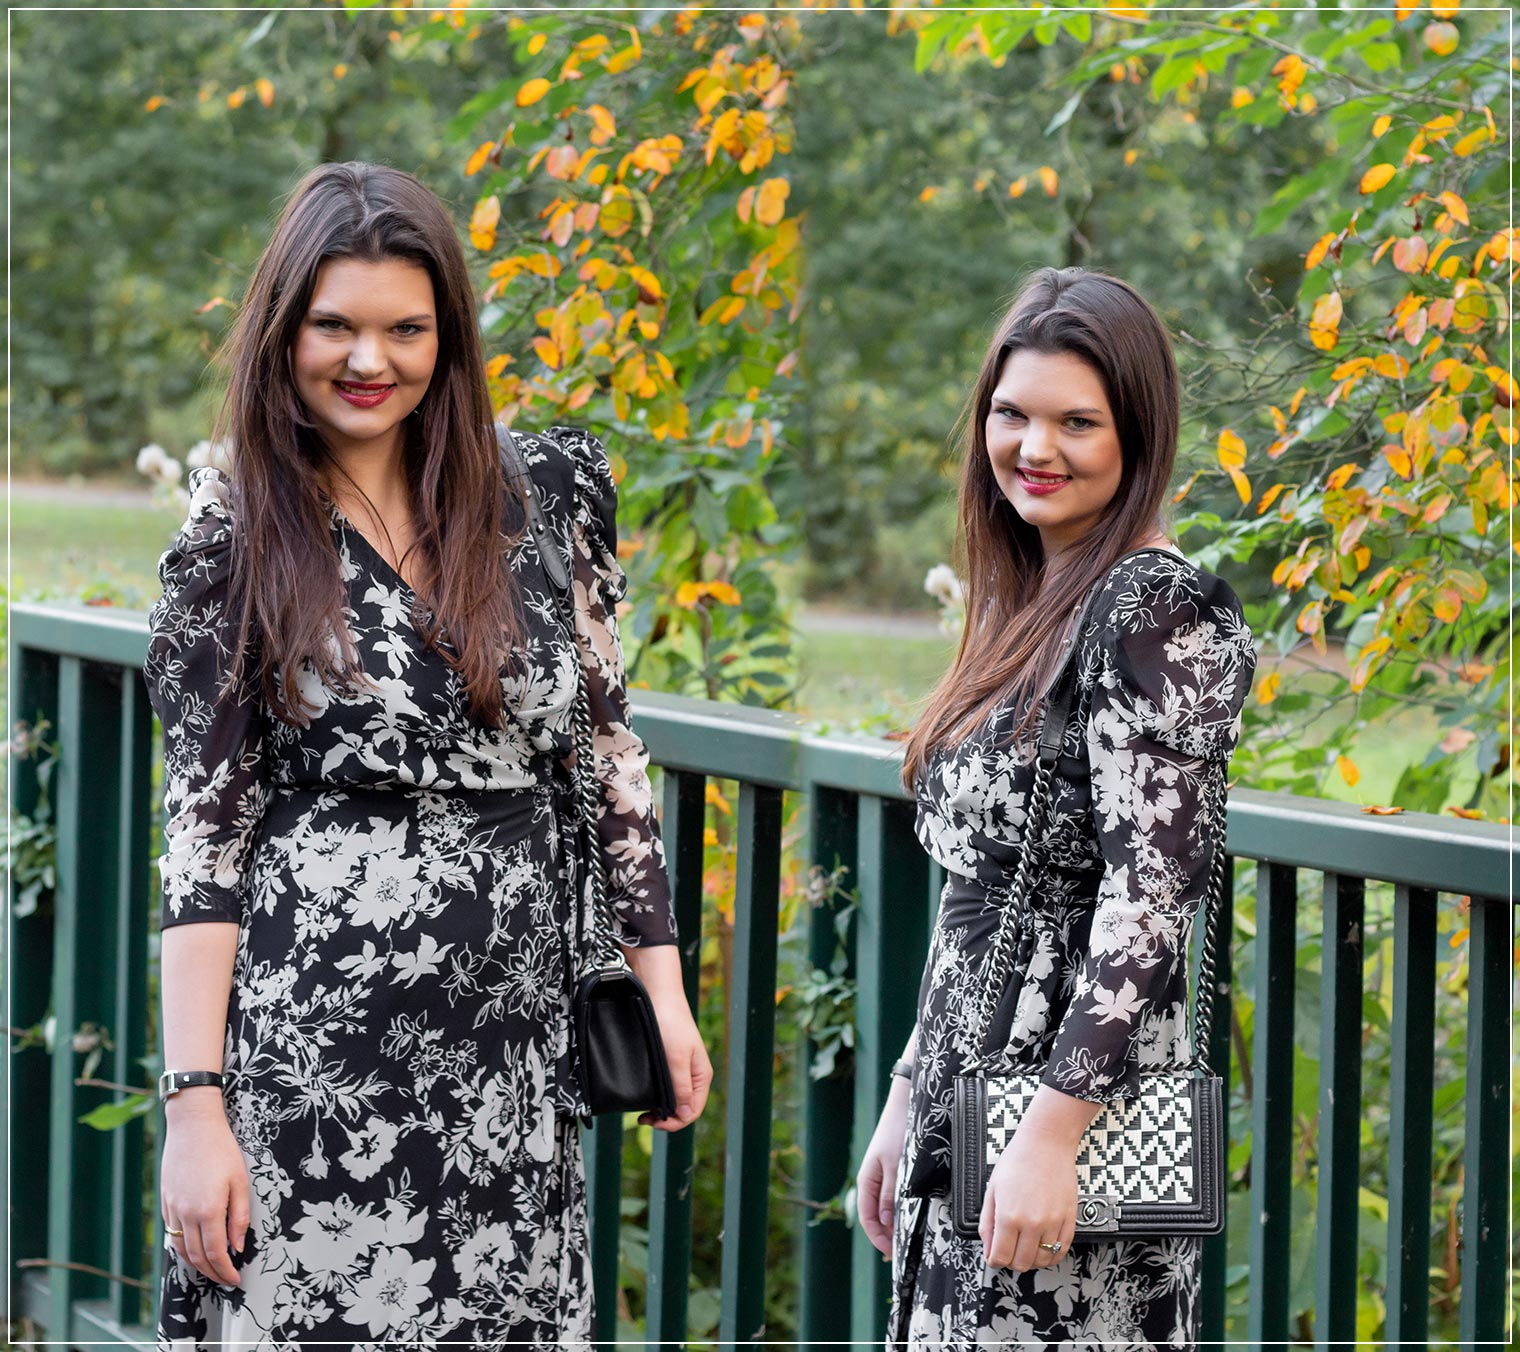 So stylst du ein Wickelkleid in Black and White Look im Herbst